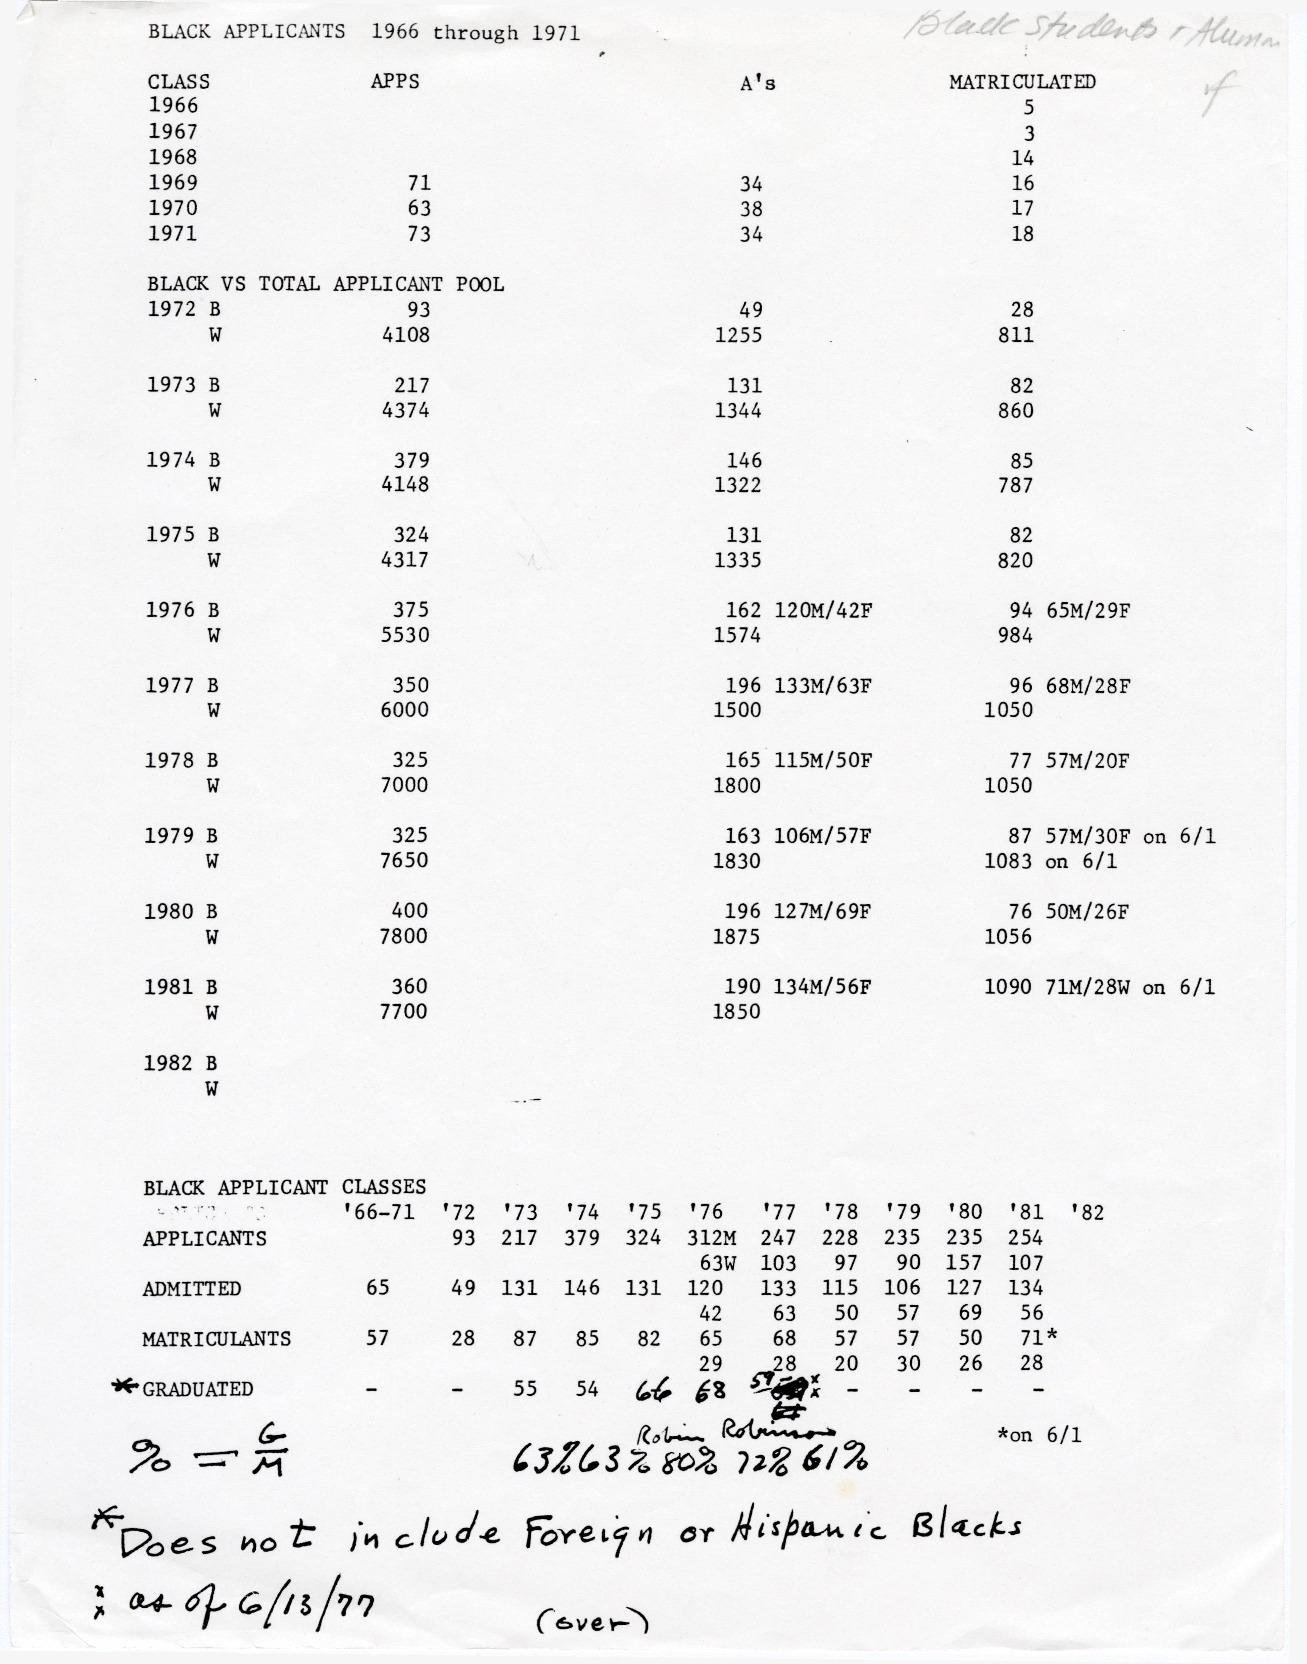 A list of the total number of Black students who applied to, were admitted to, and graduated from Dartmouth College between the years 1966 through 1971. This list demonstrates that even six years following the initiation of the Negro Applications Encouragement (NAE) program, which later became the Black Student Application Encouragement Committee (BSAEC), the number of Black students applying to and attending Dartmouth remained small in comparison to the total number of students throughout the latter half of the 1960s. Based upon the table and hand-written calculations found at the bottom of the page, it appears that an admissions officer was calculating the graduation rate for Black students at Dartmouth.